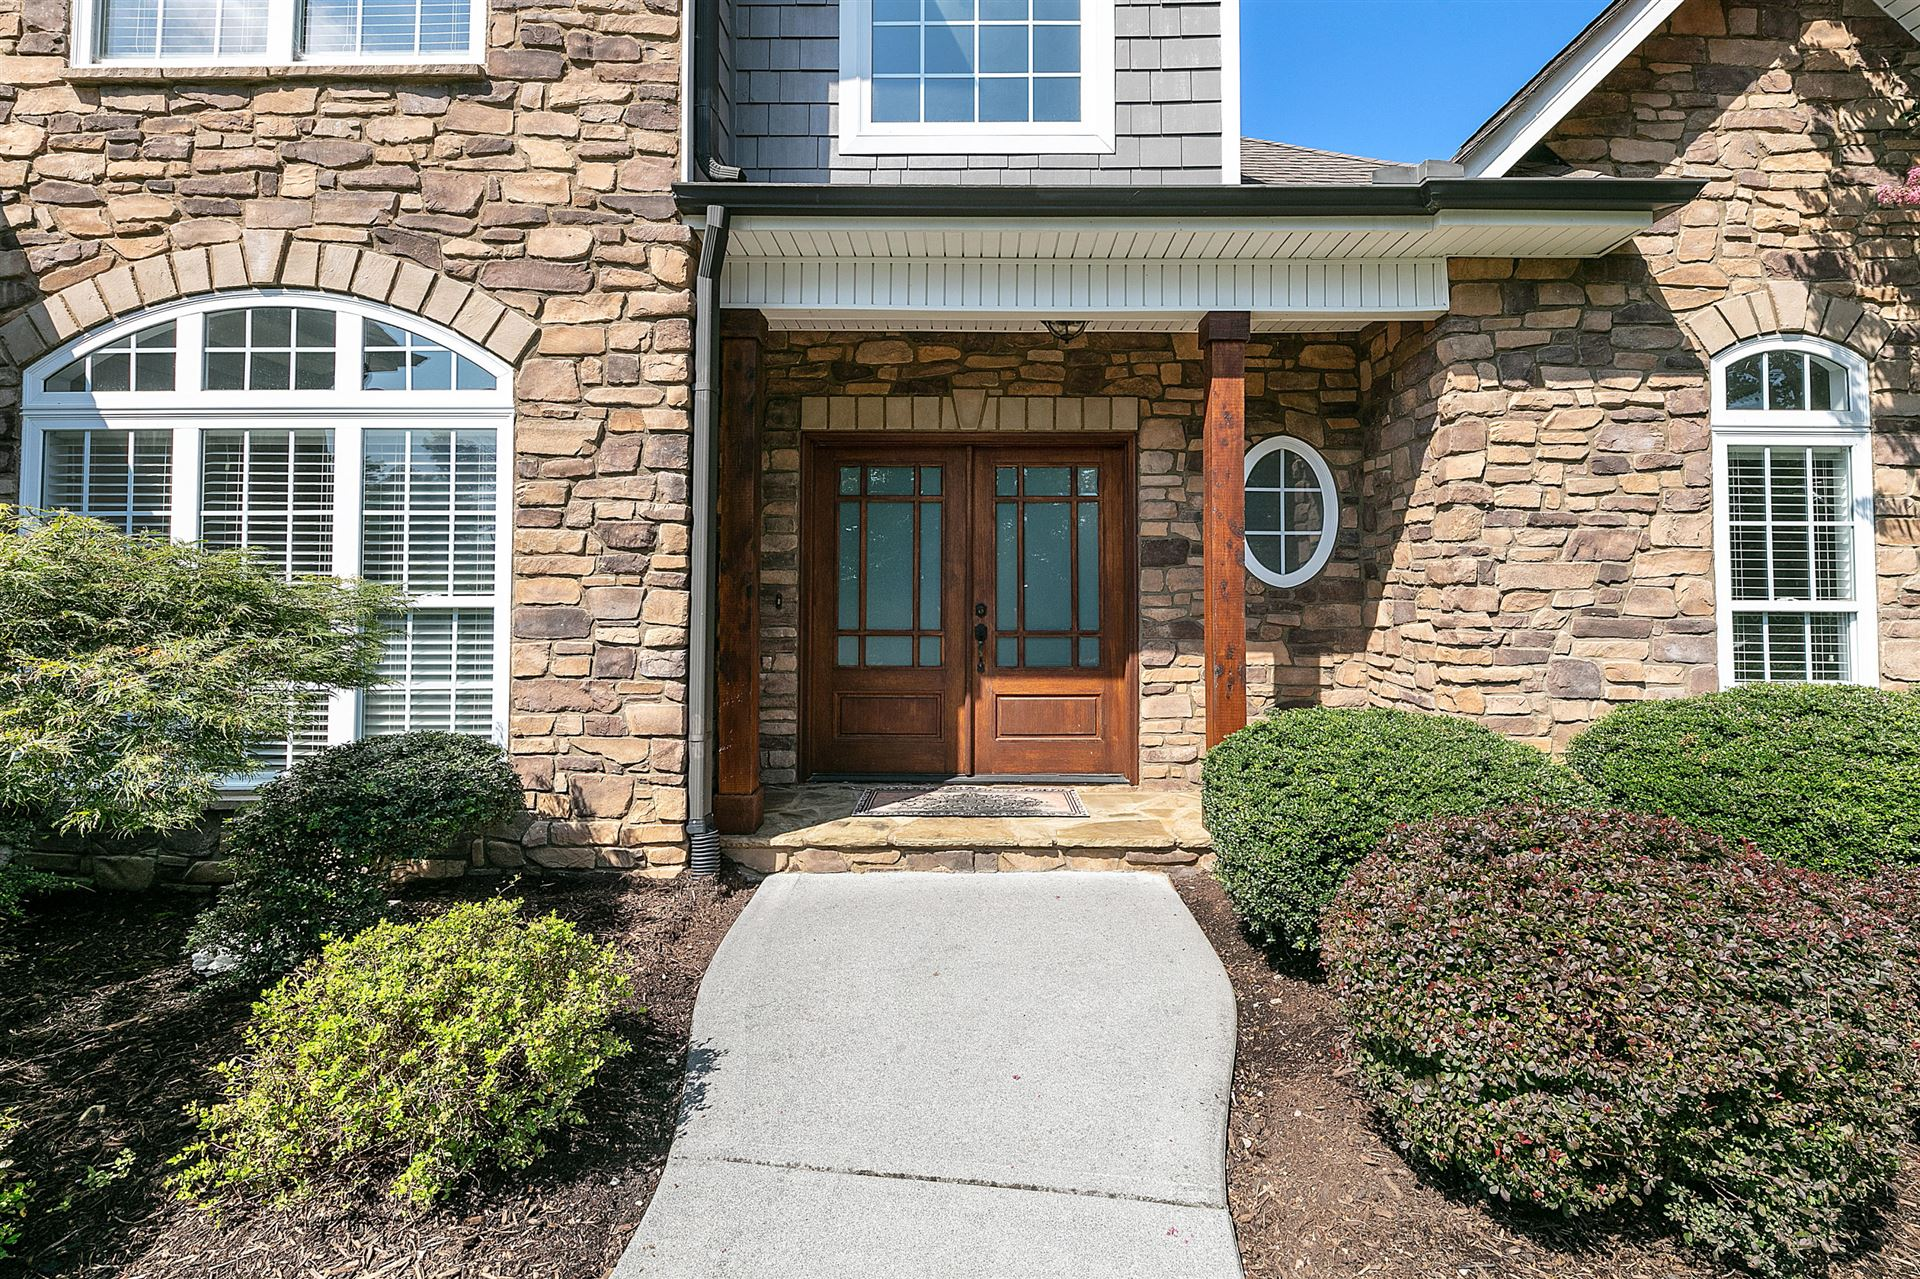 Photo of 10327 ivy Hollow Drive, Knoxville, TN 37931 (MLS # 1161247)